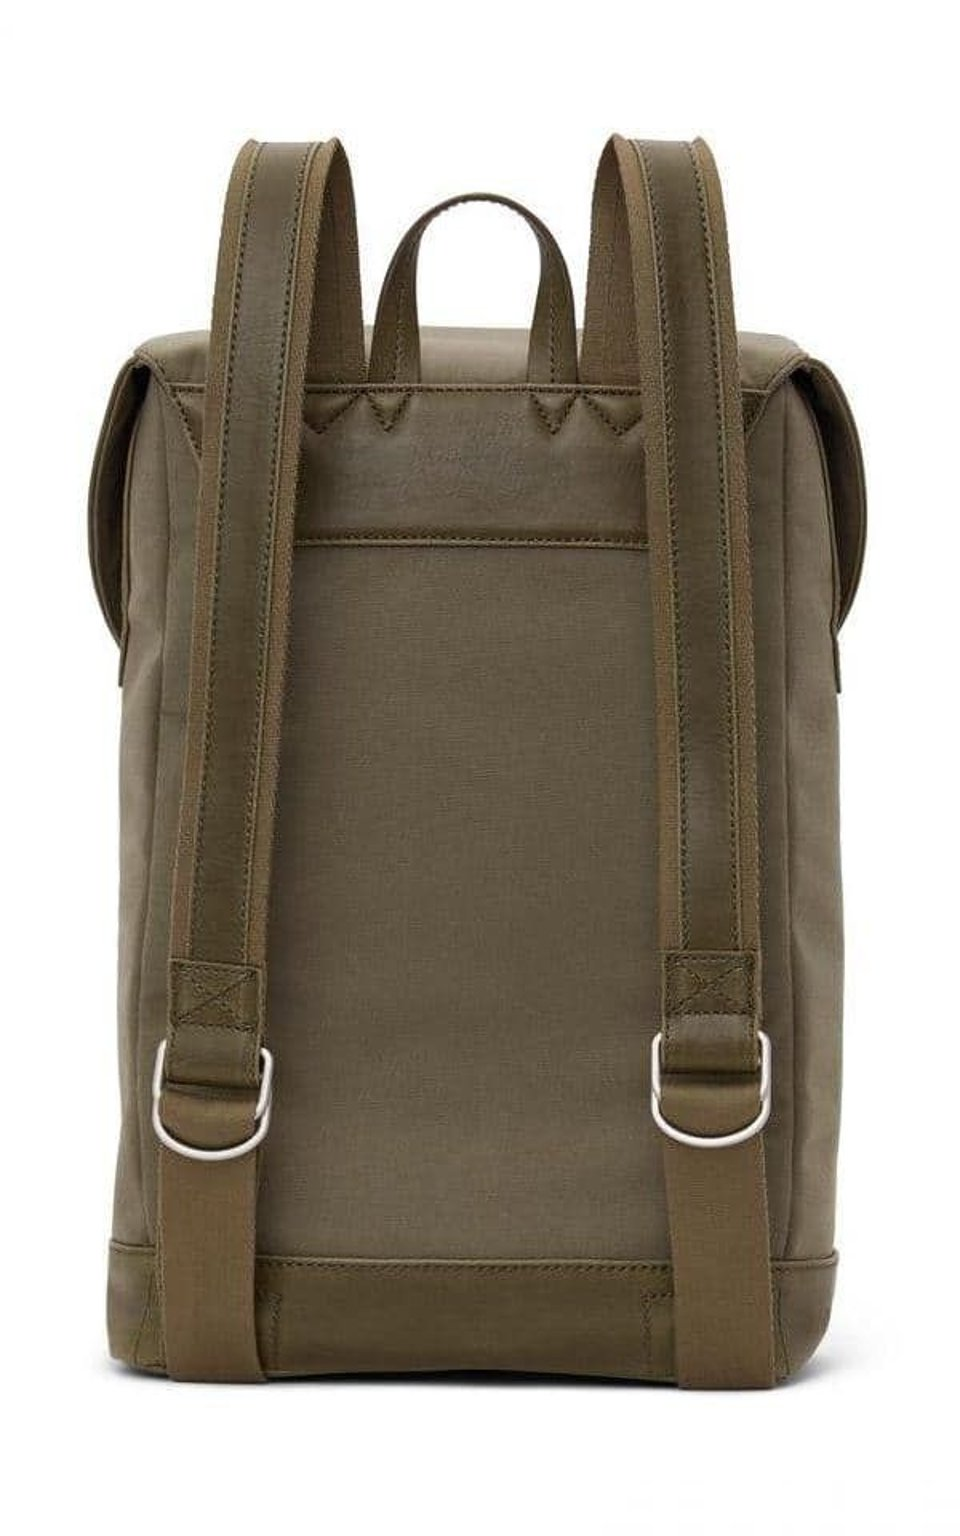 Backpack Hoxton Canvas #3